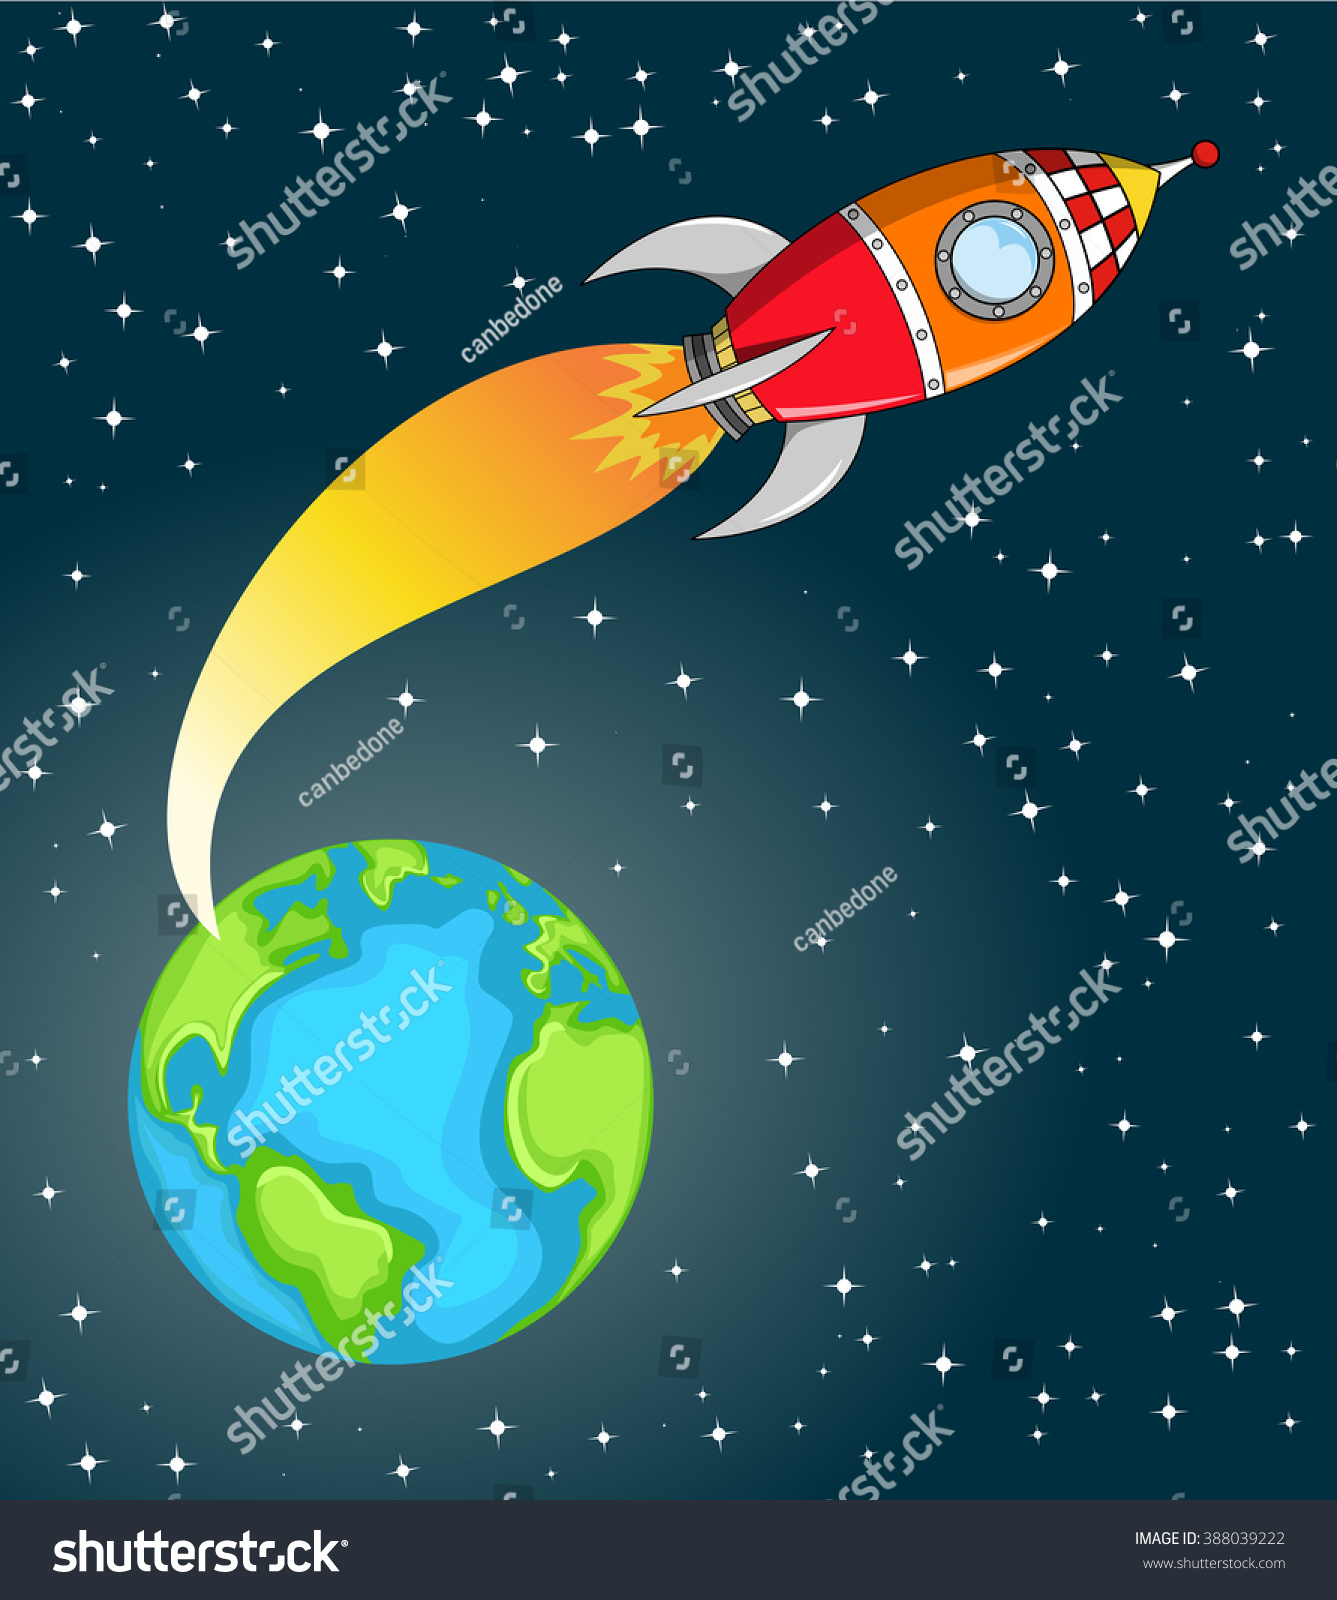 Cartoon space rocket flying space out stock vector for Flying spaces